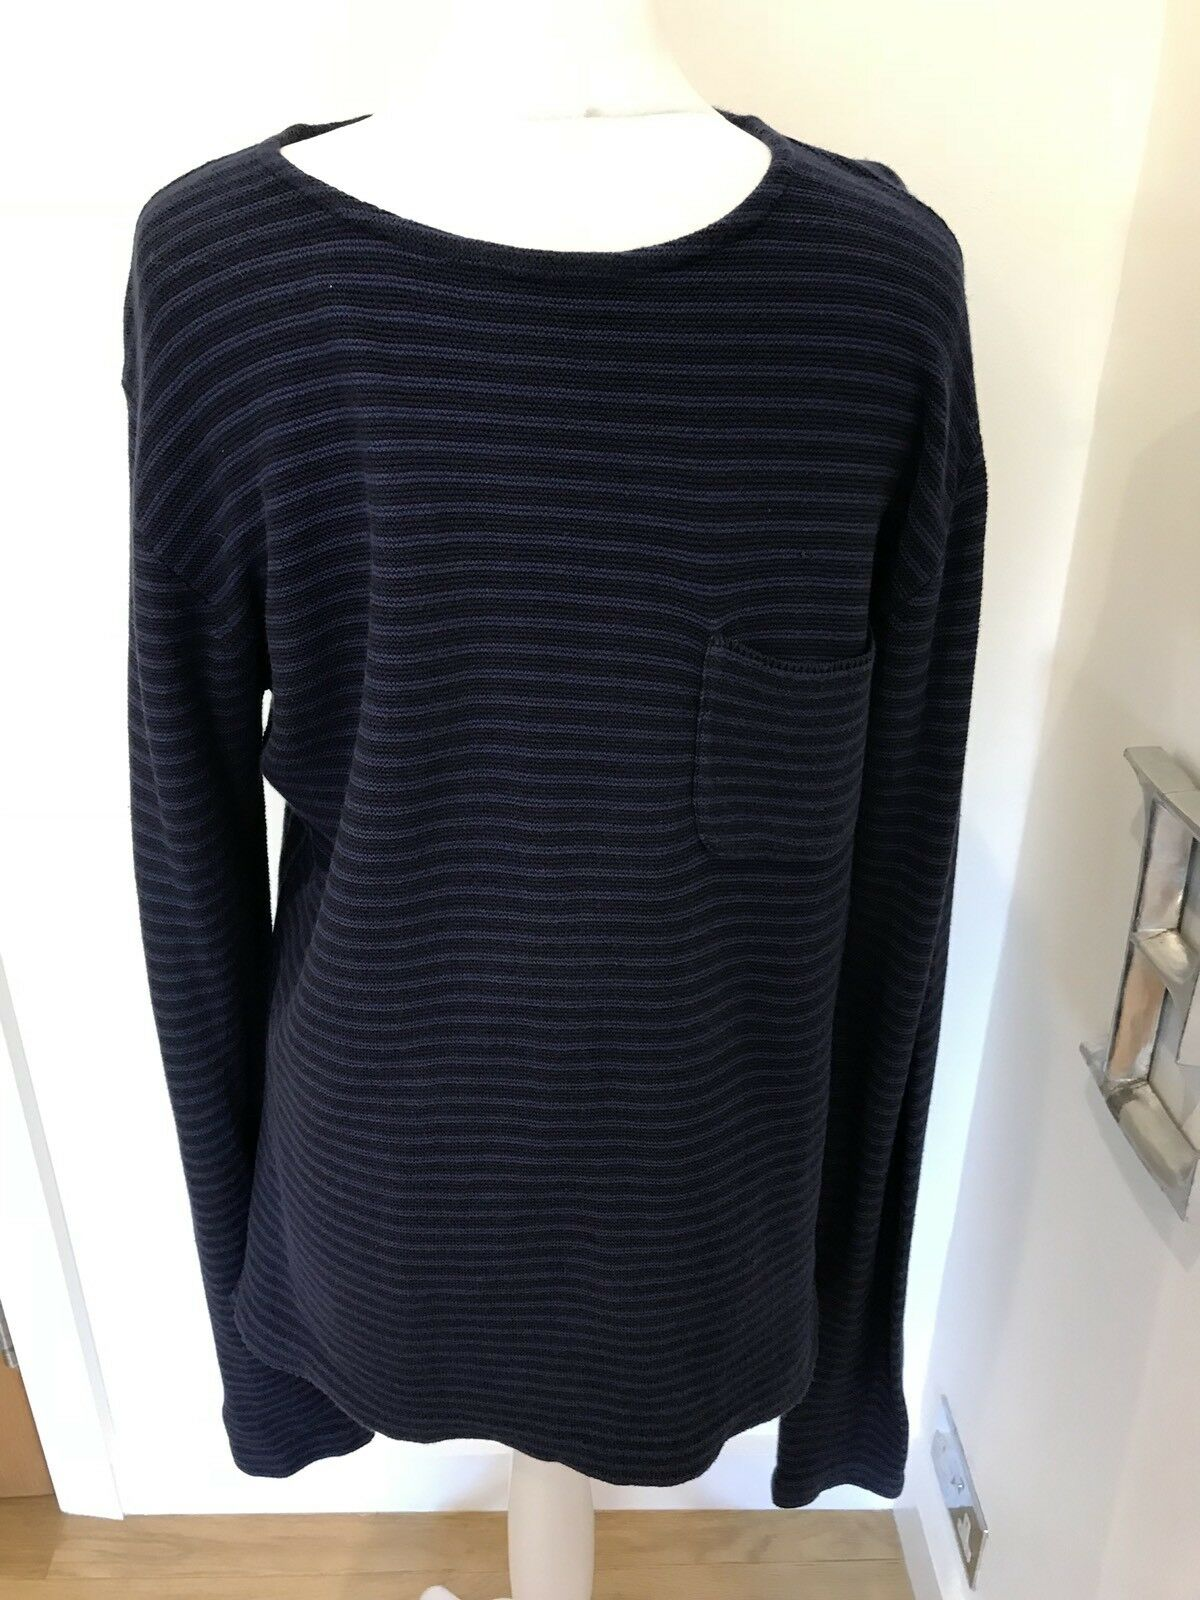 Men's Oliver Spencer Blau Stripe Cotton Jumper Größe M Good Condition